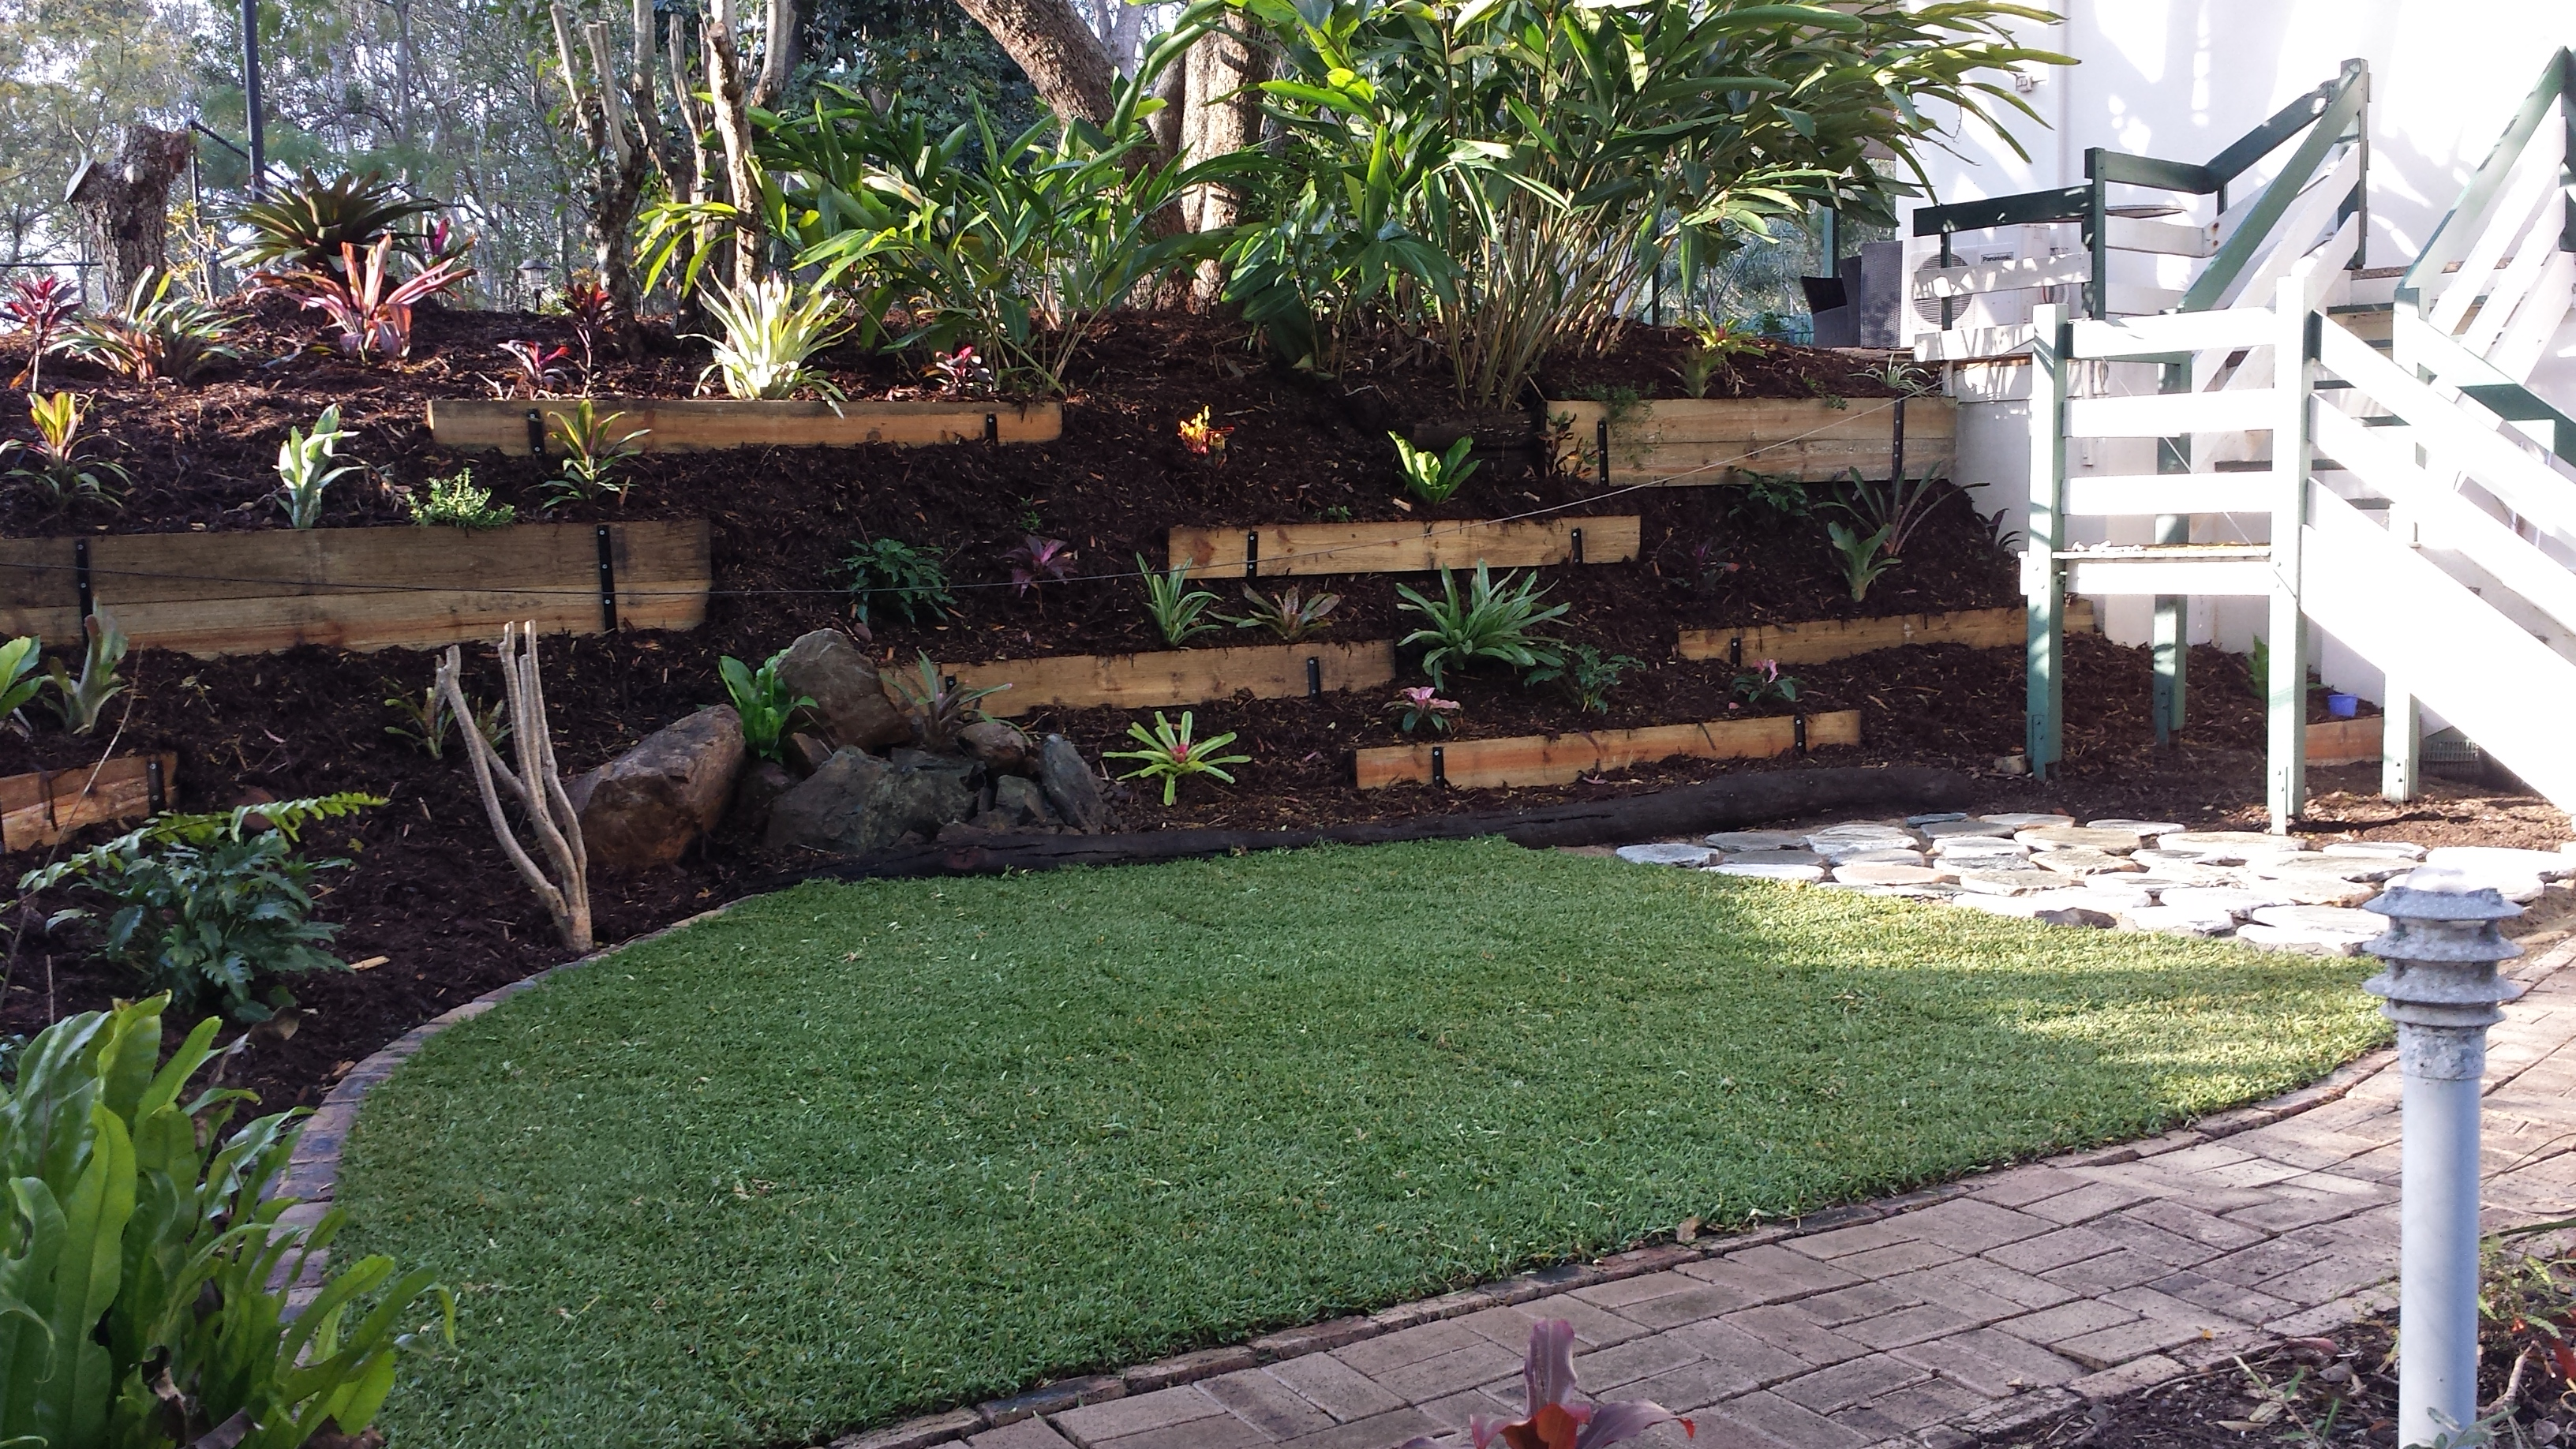 Garden designs garden ideas in brisbane queensland au for Queensland garden design